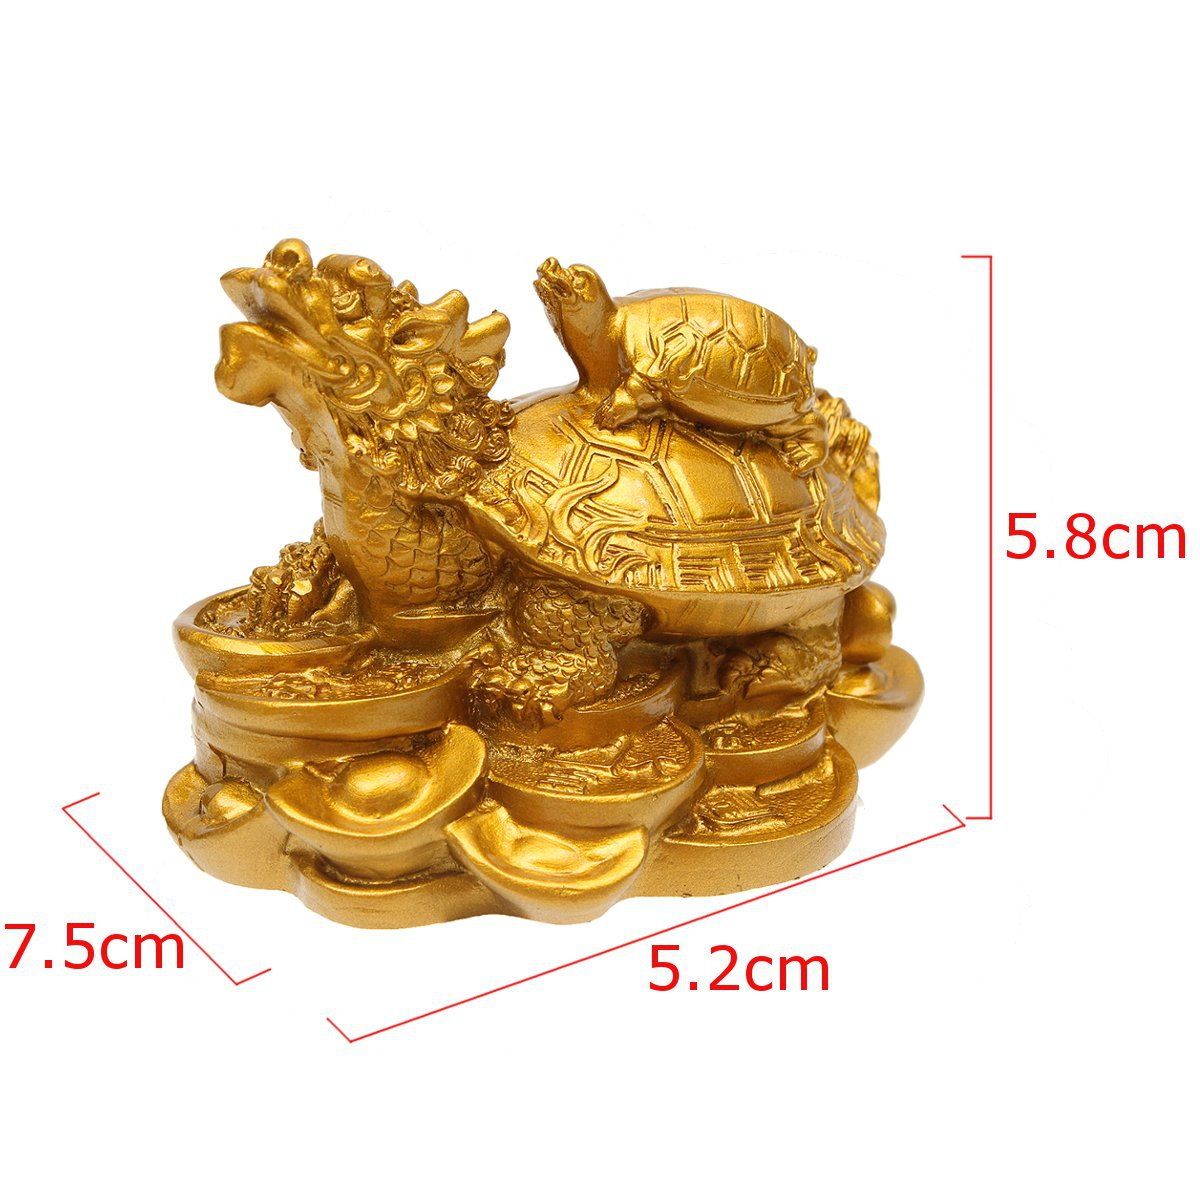 chinois dragon tortue feng shui statue figurine statuette amulette buddhist ebay. Black Bedroom Furniture Sets. Home Design Ideas